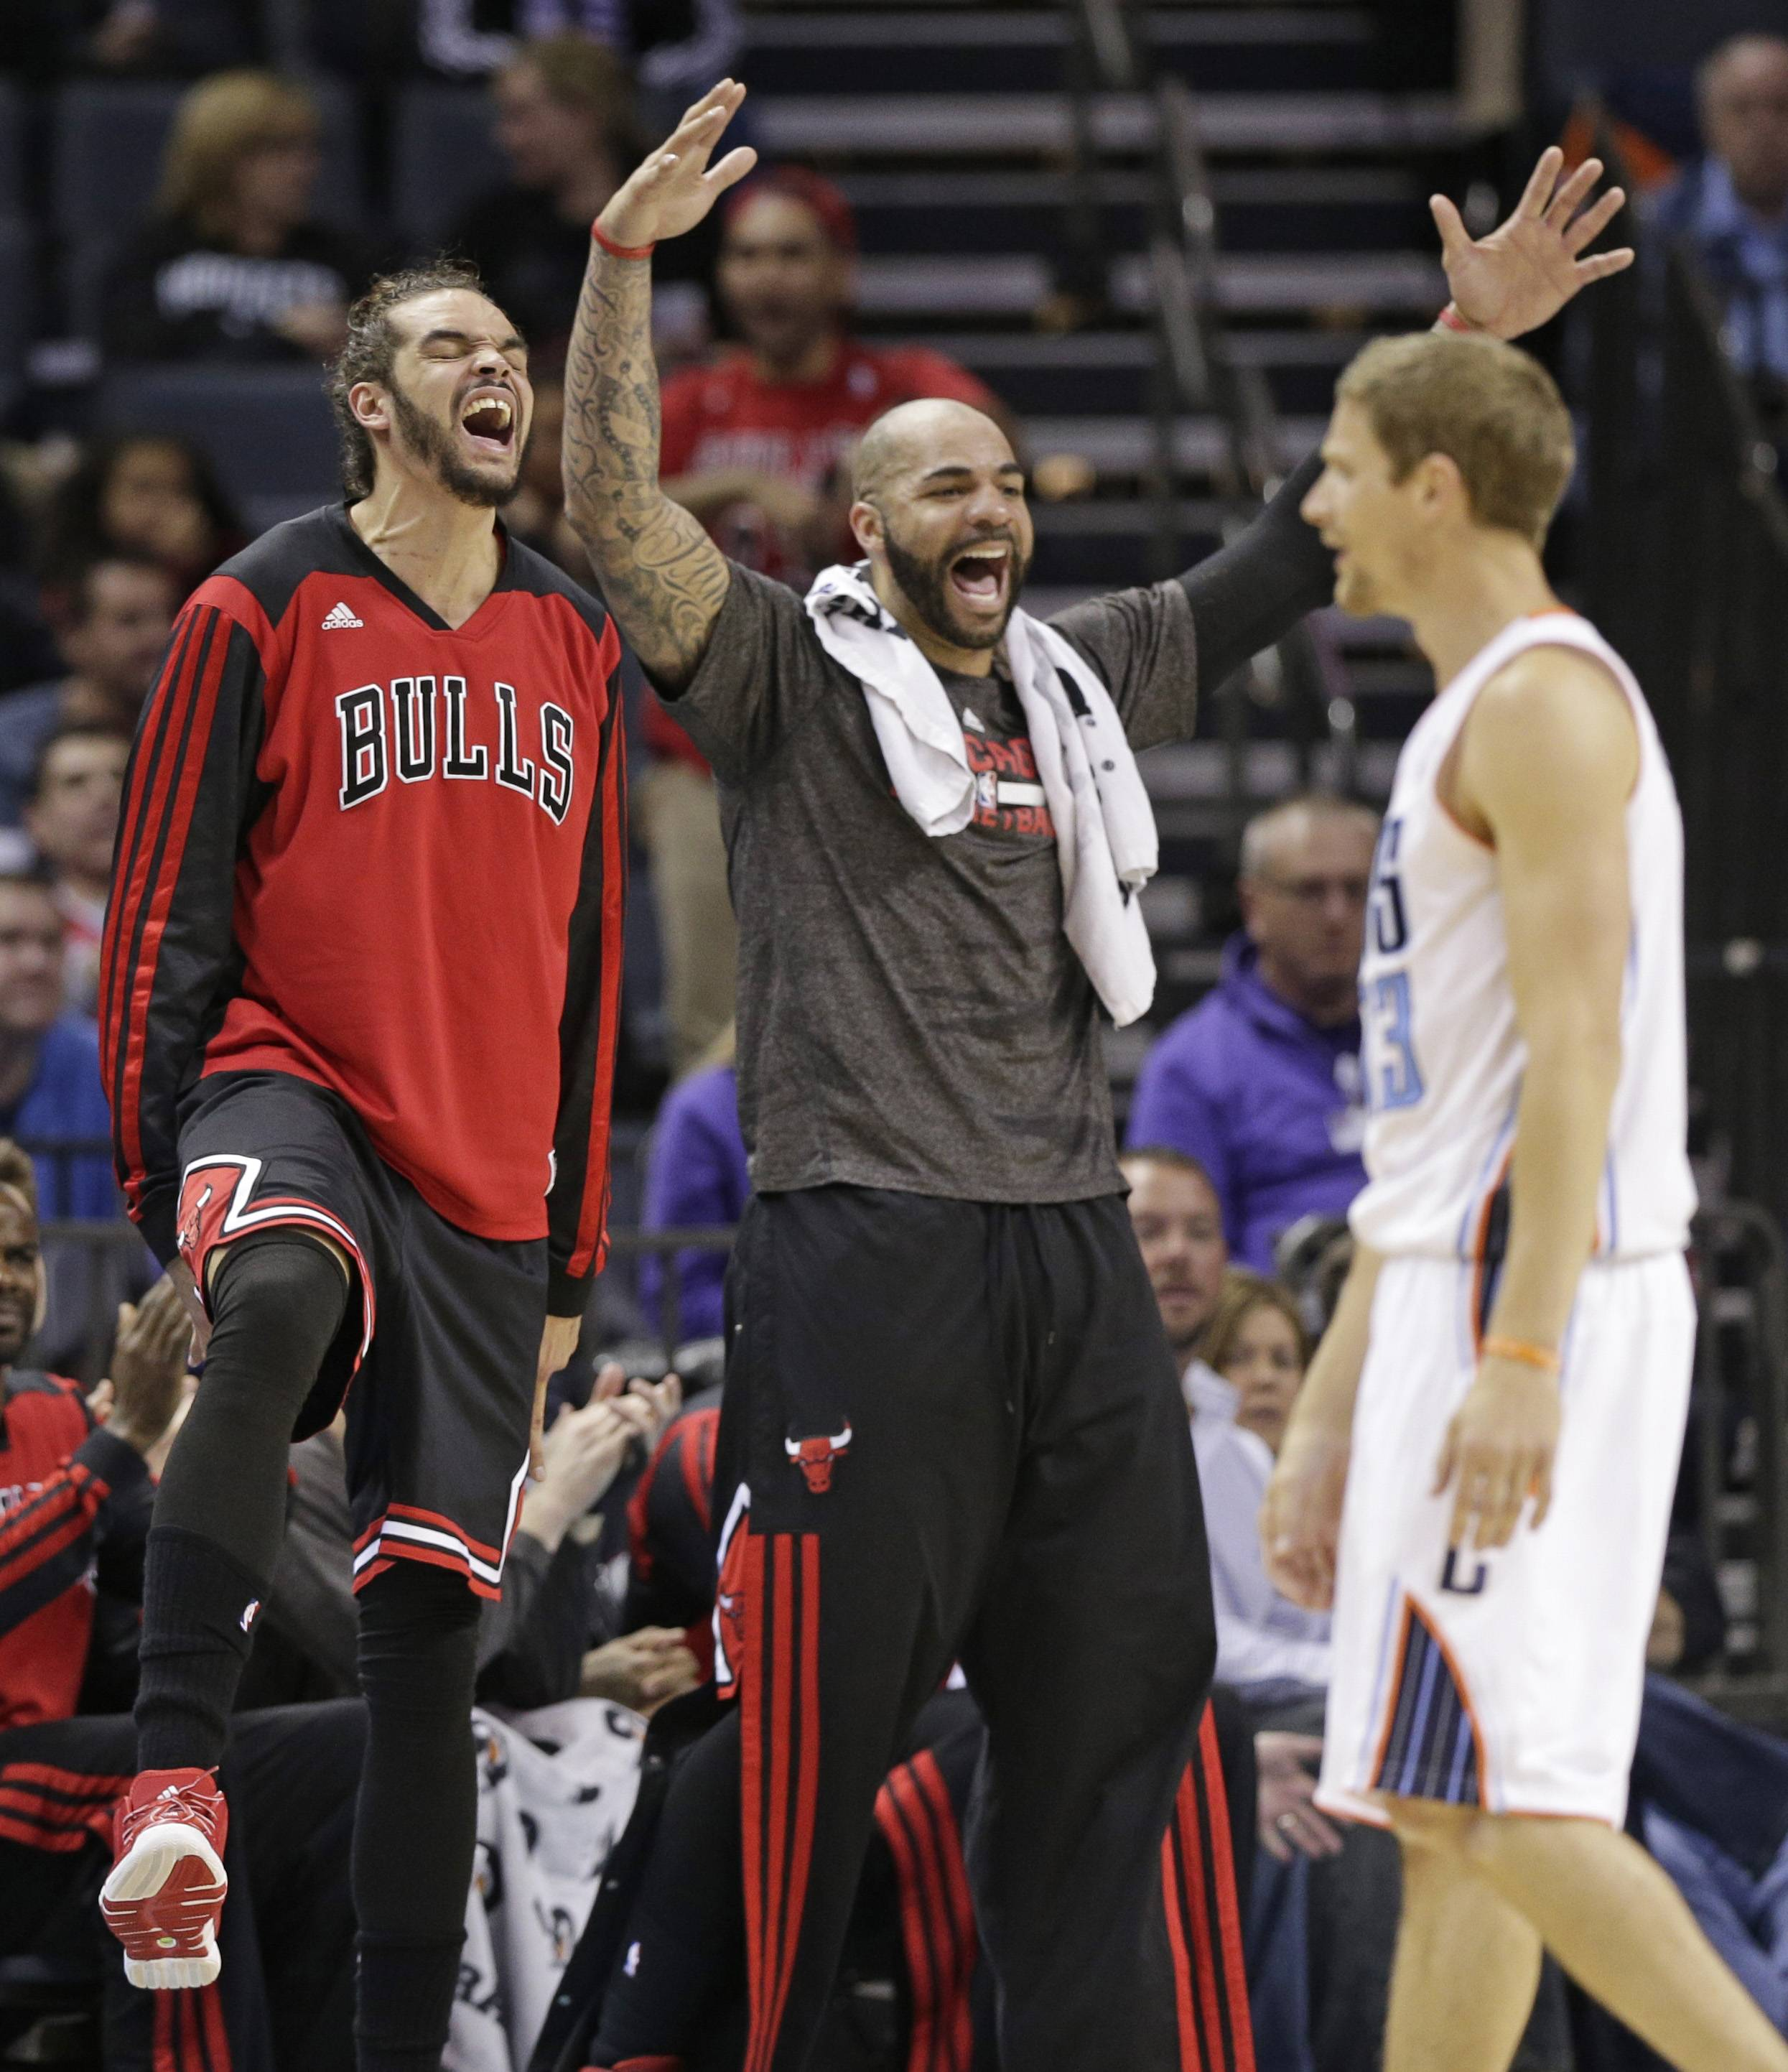 The Bulls' Joakim Noah, left, and Carlos Boozer, center, react after Charlotte Bobcats' Luke Ridnour, right, was called for a foul during Wednesday night's game in Charlotte. The Bulls lost 91-86 in overtime, and they'll play either Brooklyn or Washington in the first playoffs round.